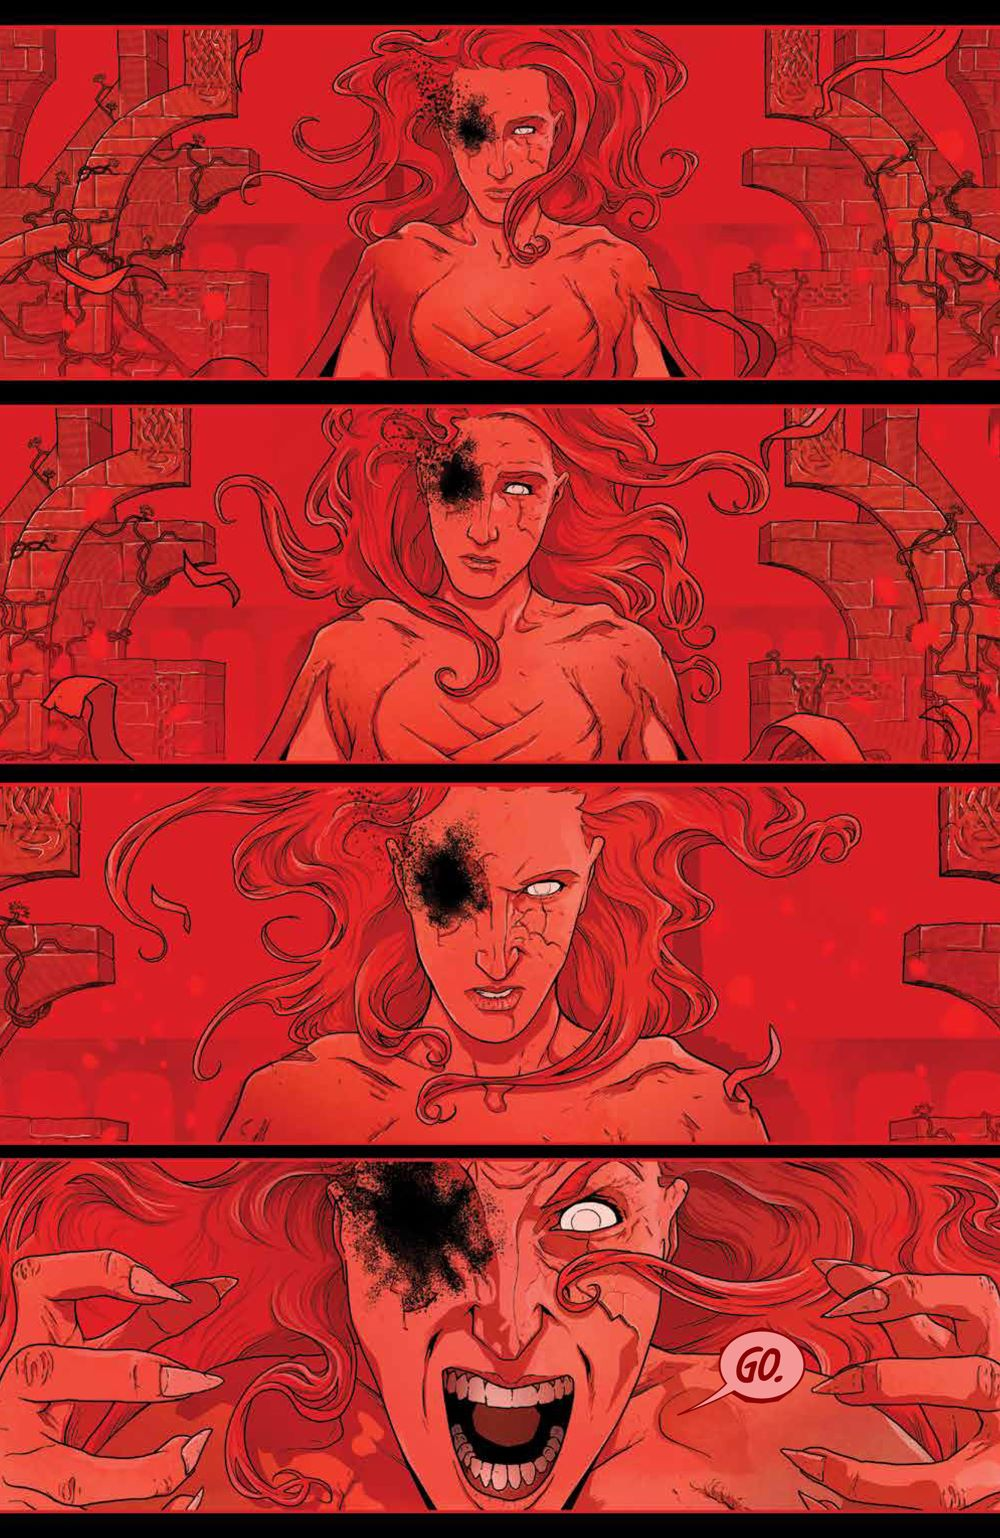 RedMother_010_PRESS_3 ComicList Previews: THE RED MOTHER #10